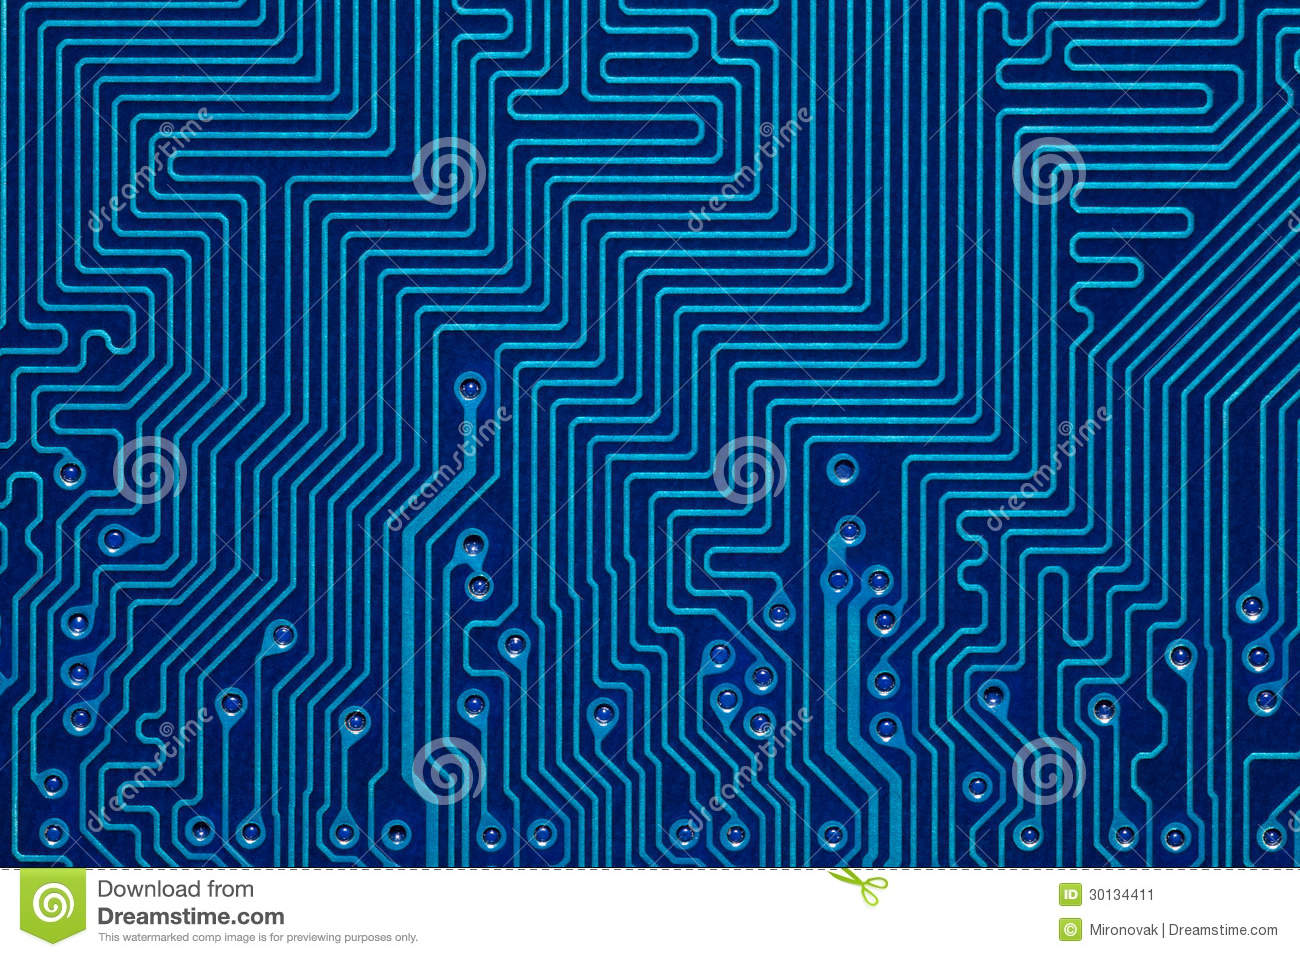 Printed Circuit Board Red Stock Image Auto Electrical Wiring Diagram Photo 5153818 Shutterstock Blue